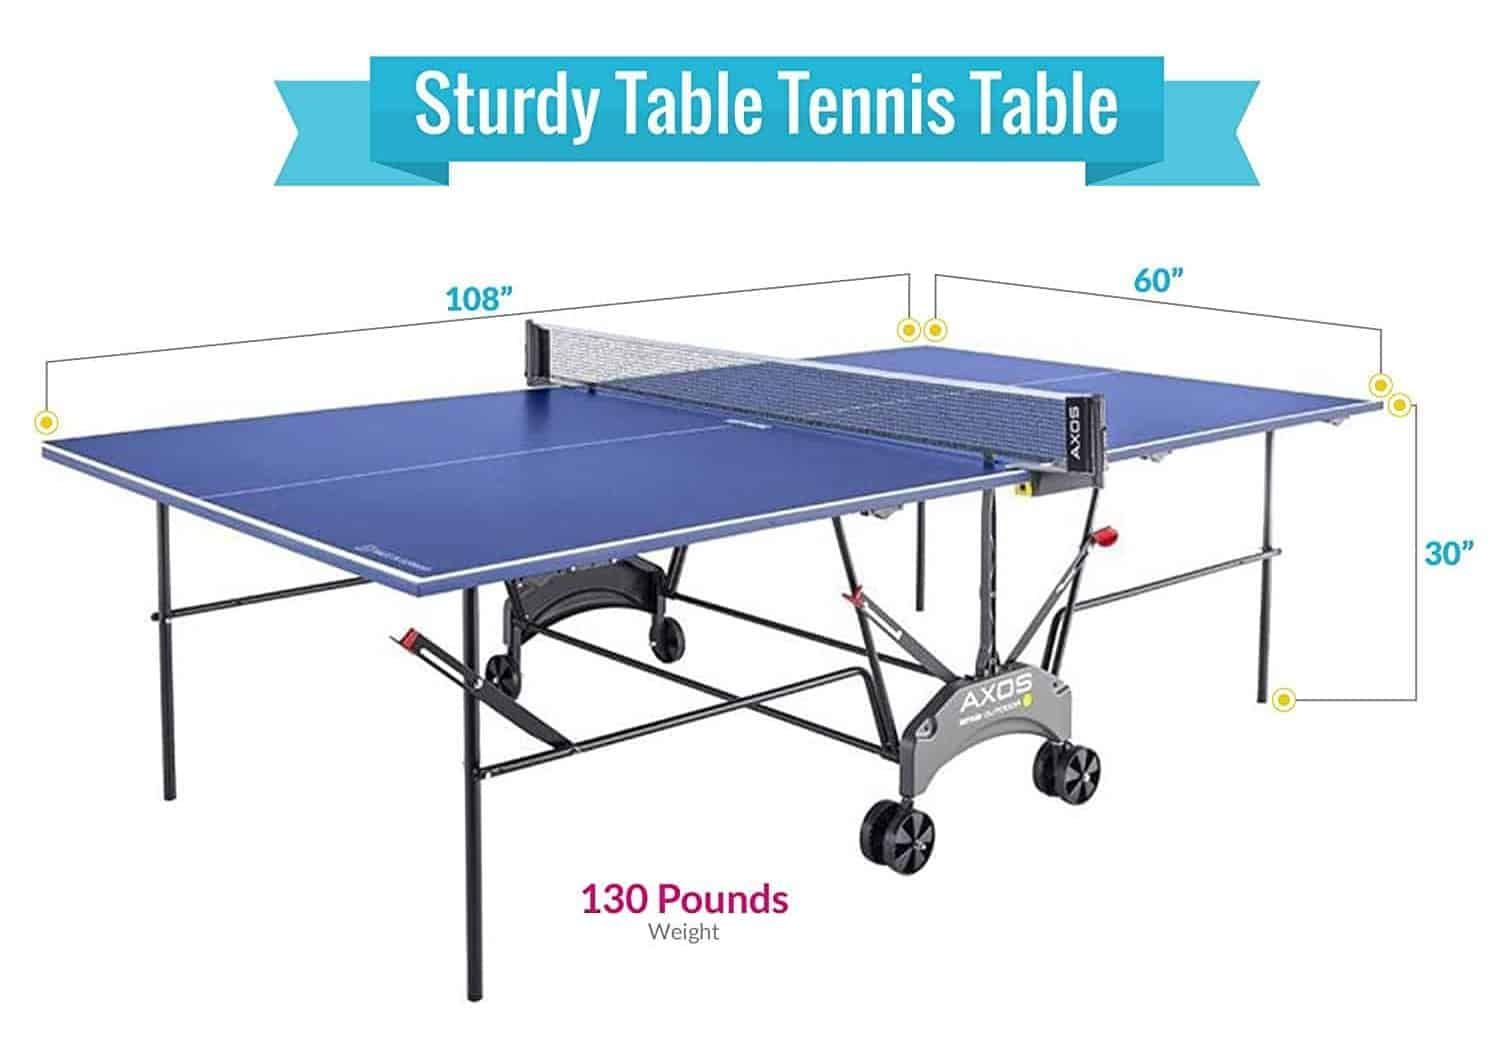 Top 10 Best Ping Pong Tables In 2020 Reviews Buying Guides Best Ping Pong Table Outdoor Table Tennis Table Table Tennis